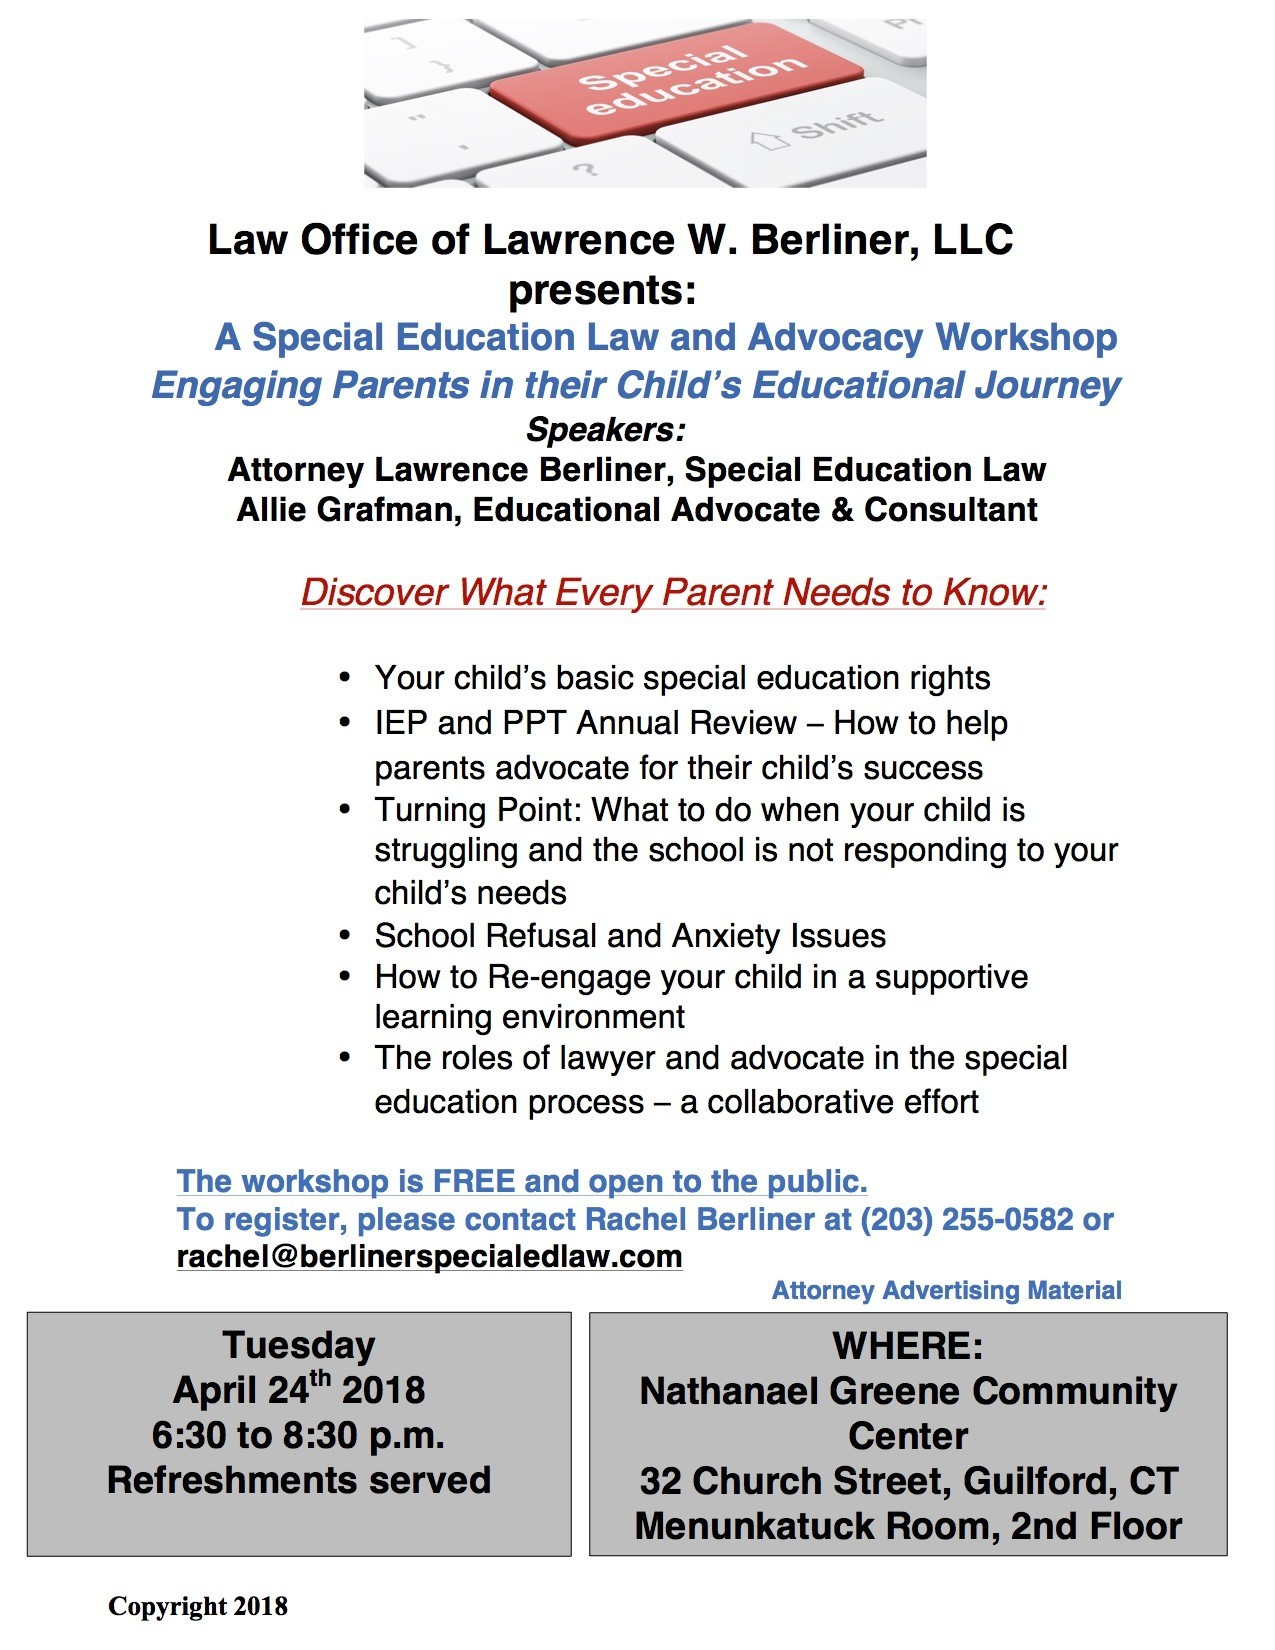 The Role Of Special Education Advocate >> Special Education Law And Advocacy Parent Workshop In Guilford On